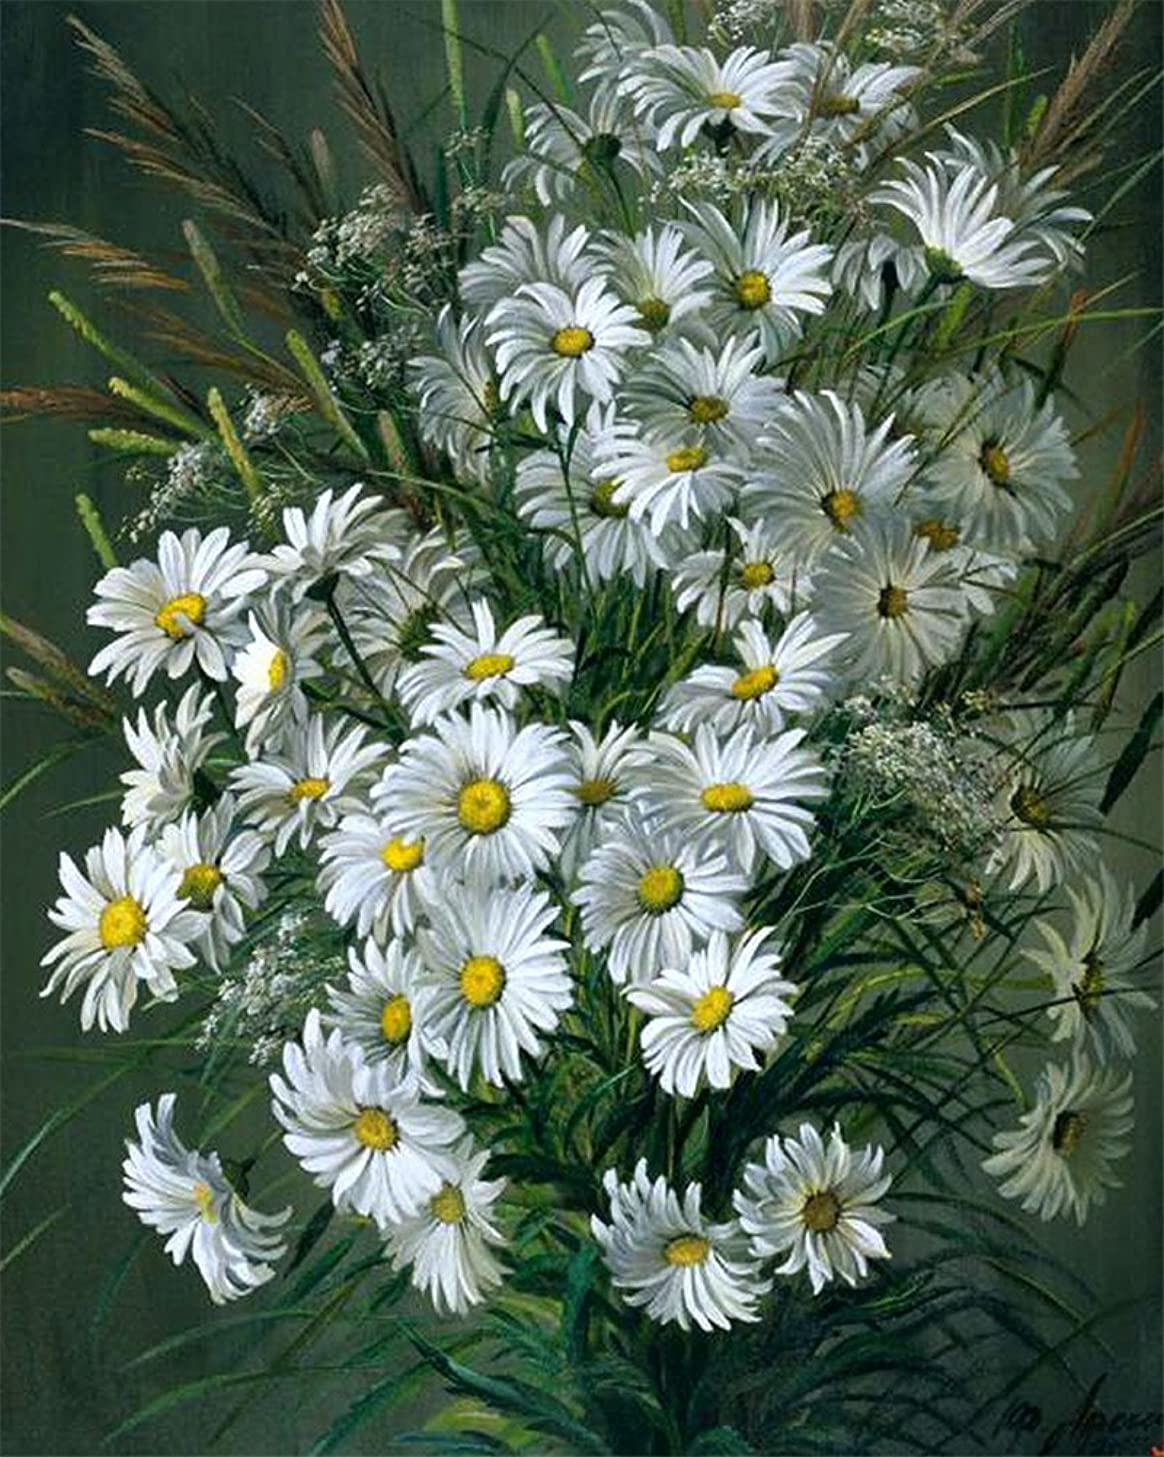 YEESAM Art Paint by Number Kits for Adults Kids - White Daisies 16x20 inch Linen Canvas (Without Frame)